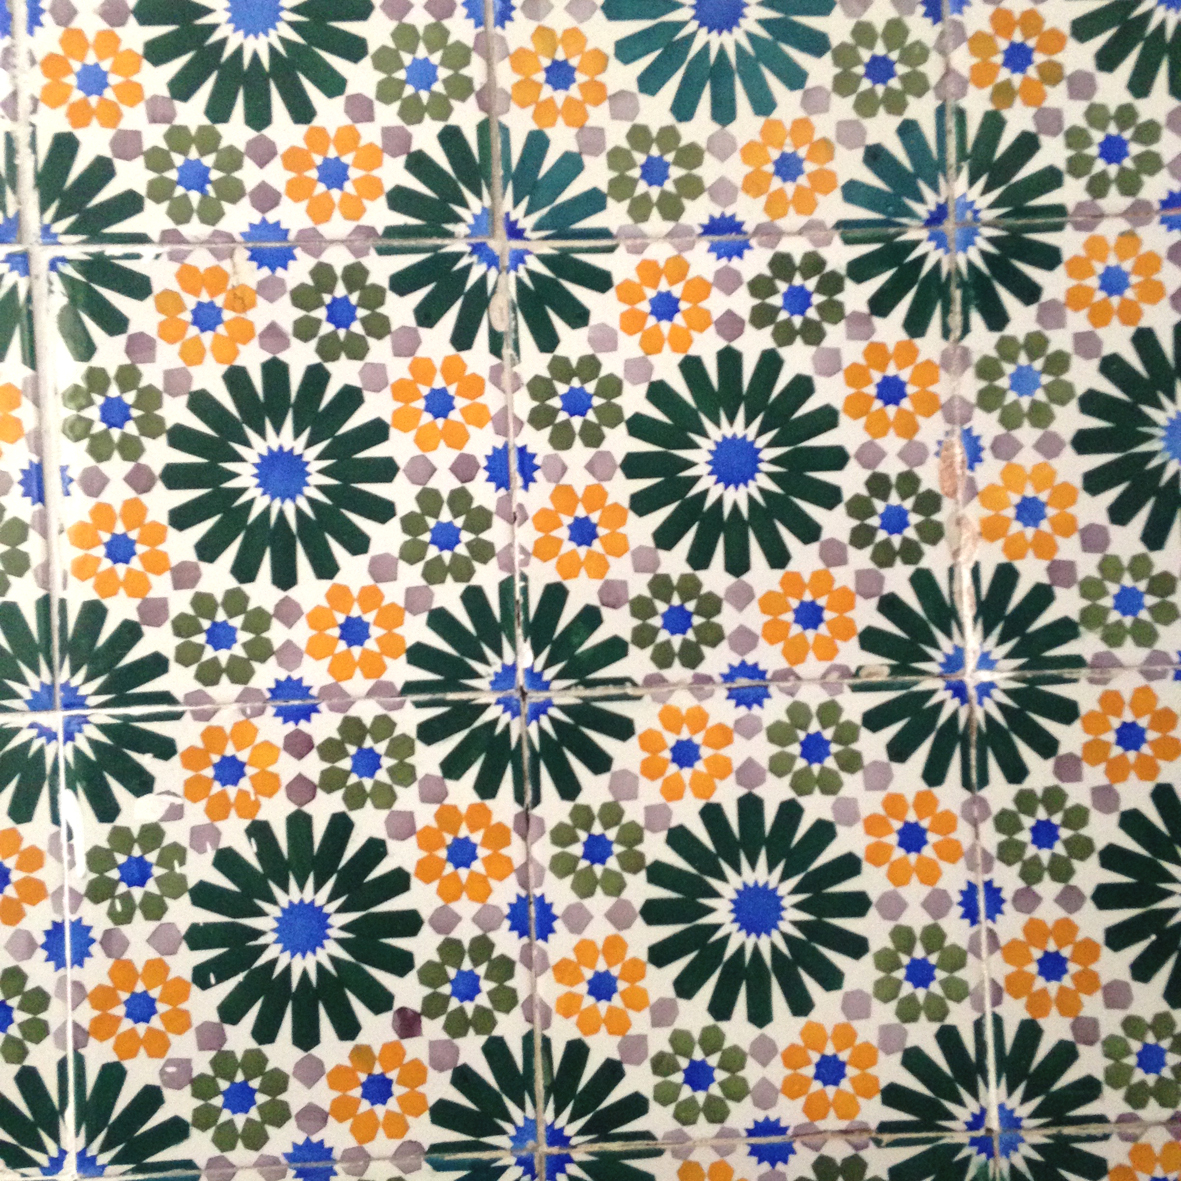 Even the laundry room isn't left out with these retro-feel tiles!